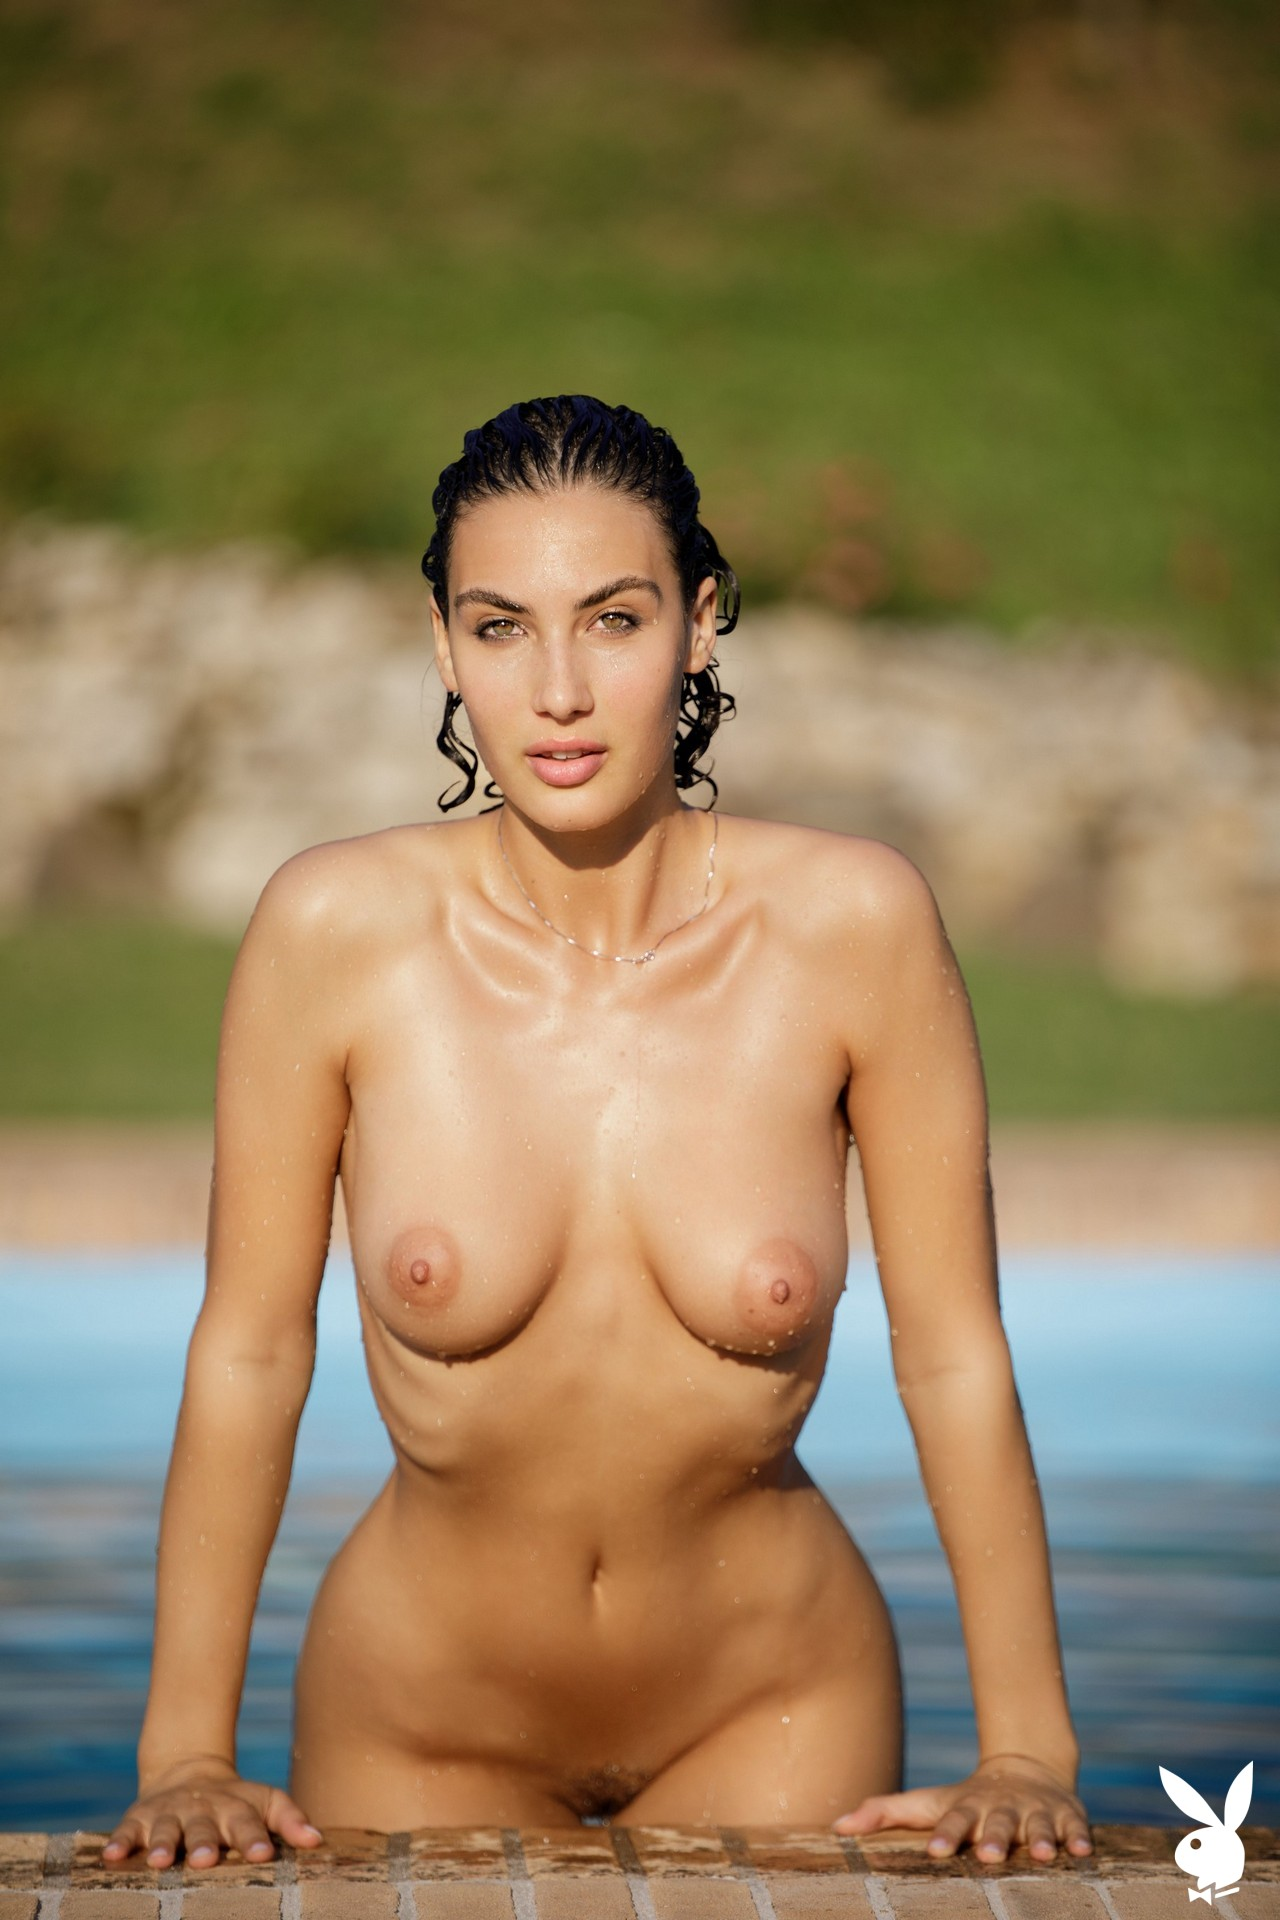 Gena Miller In Immerse Yourself Playboy Plus (16)